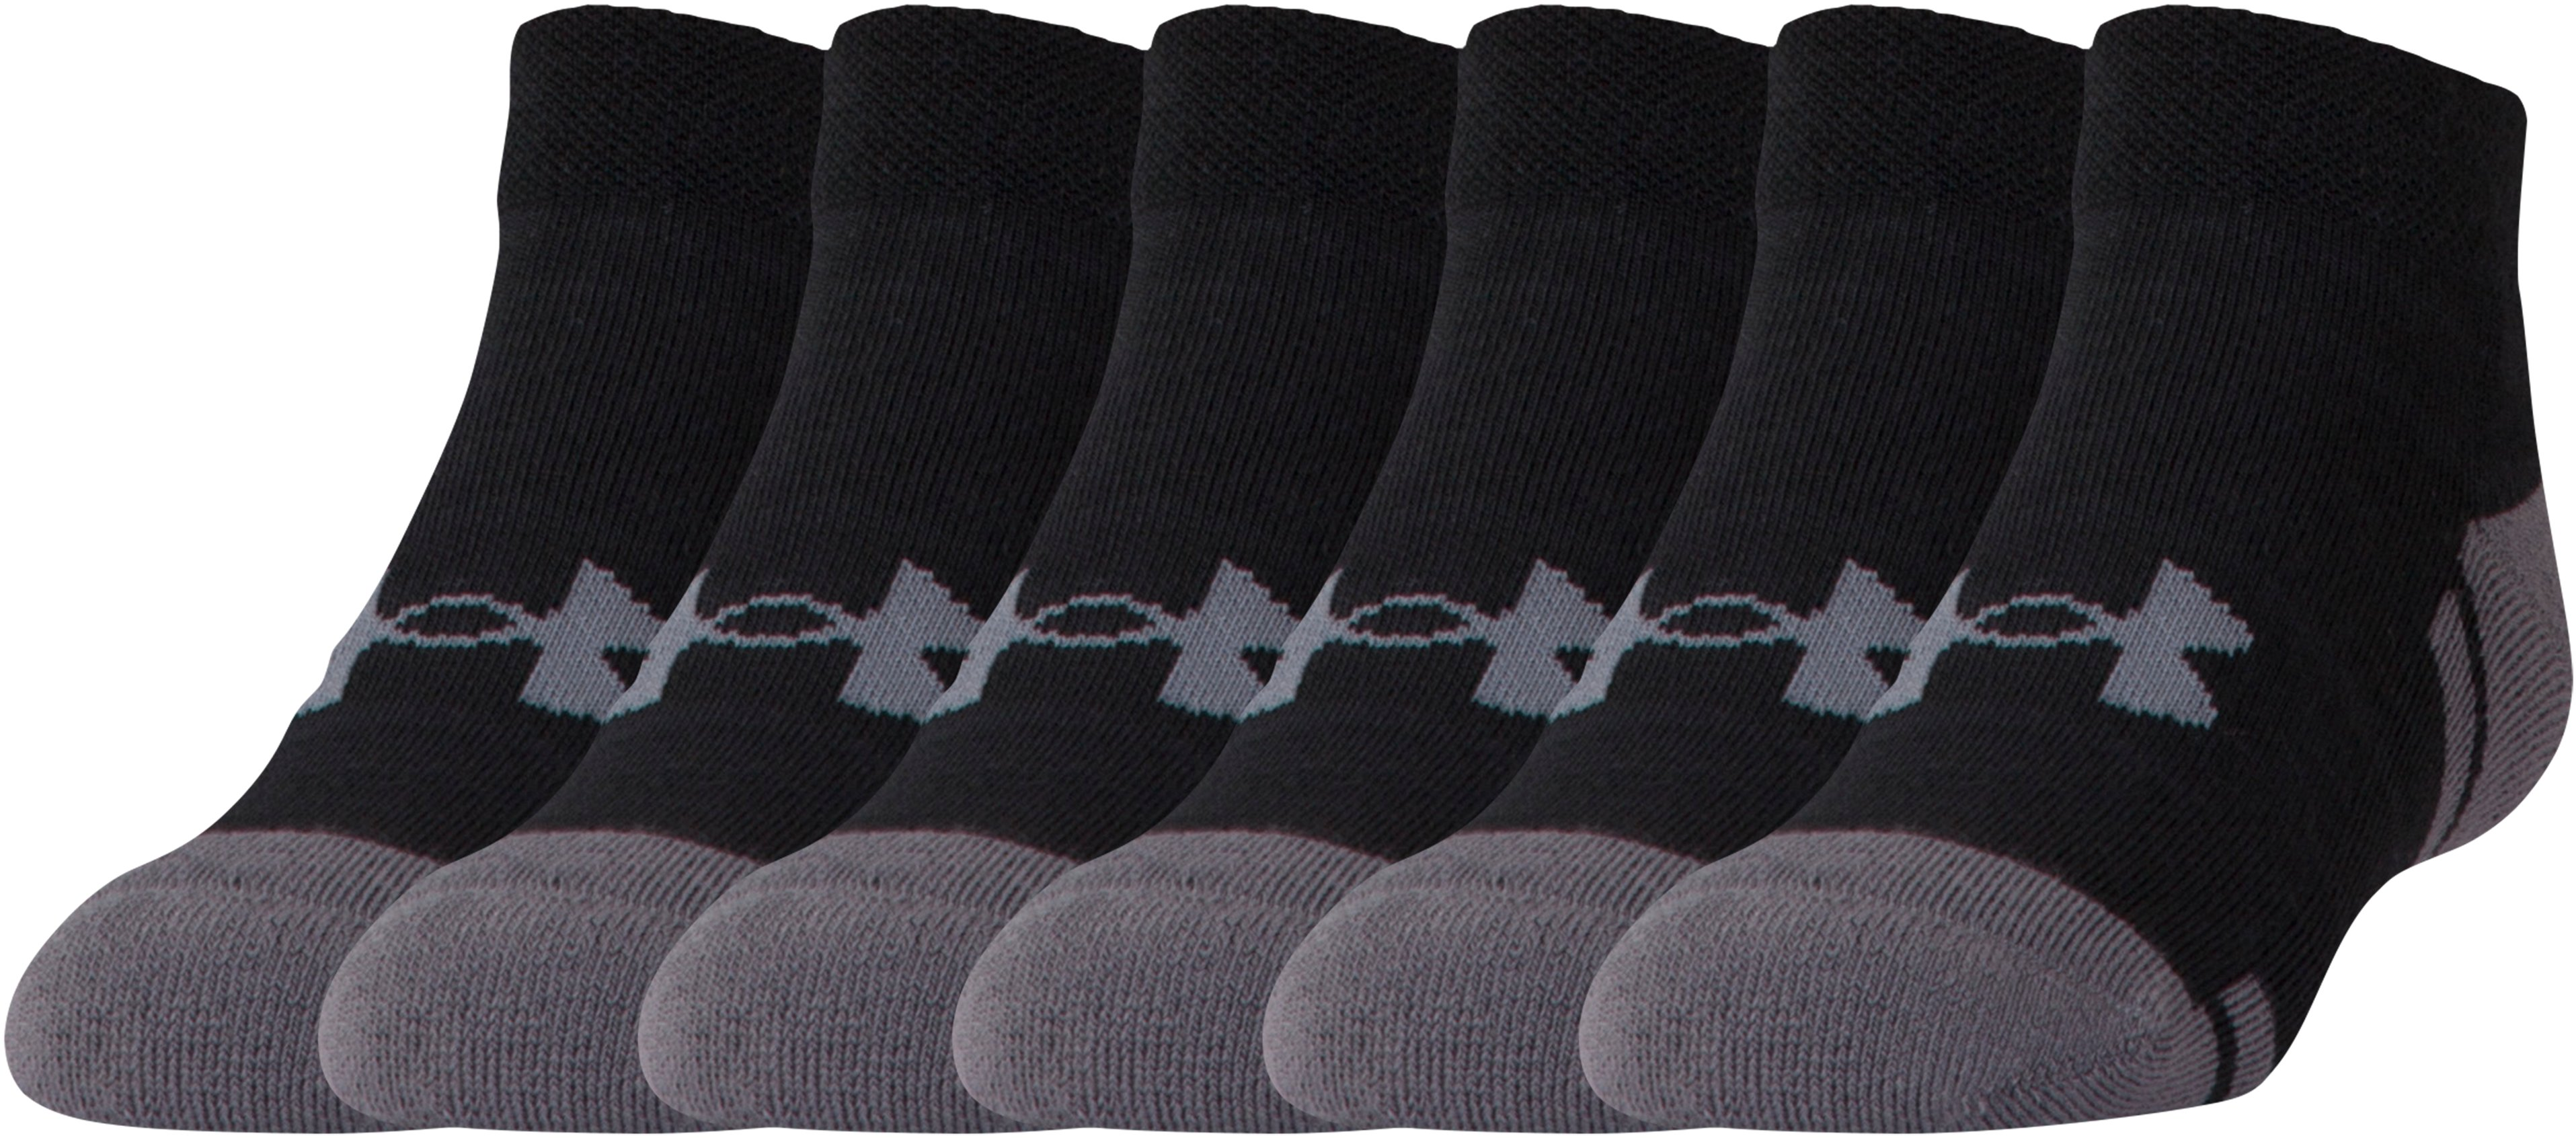 Boys' UA Resistor III Lo Cut Socks – 6-Pack, Black